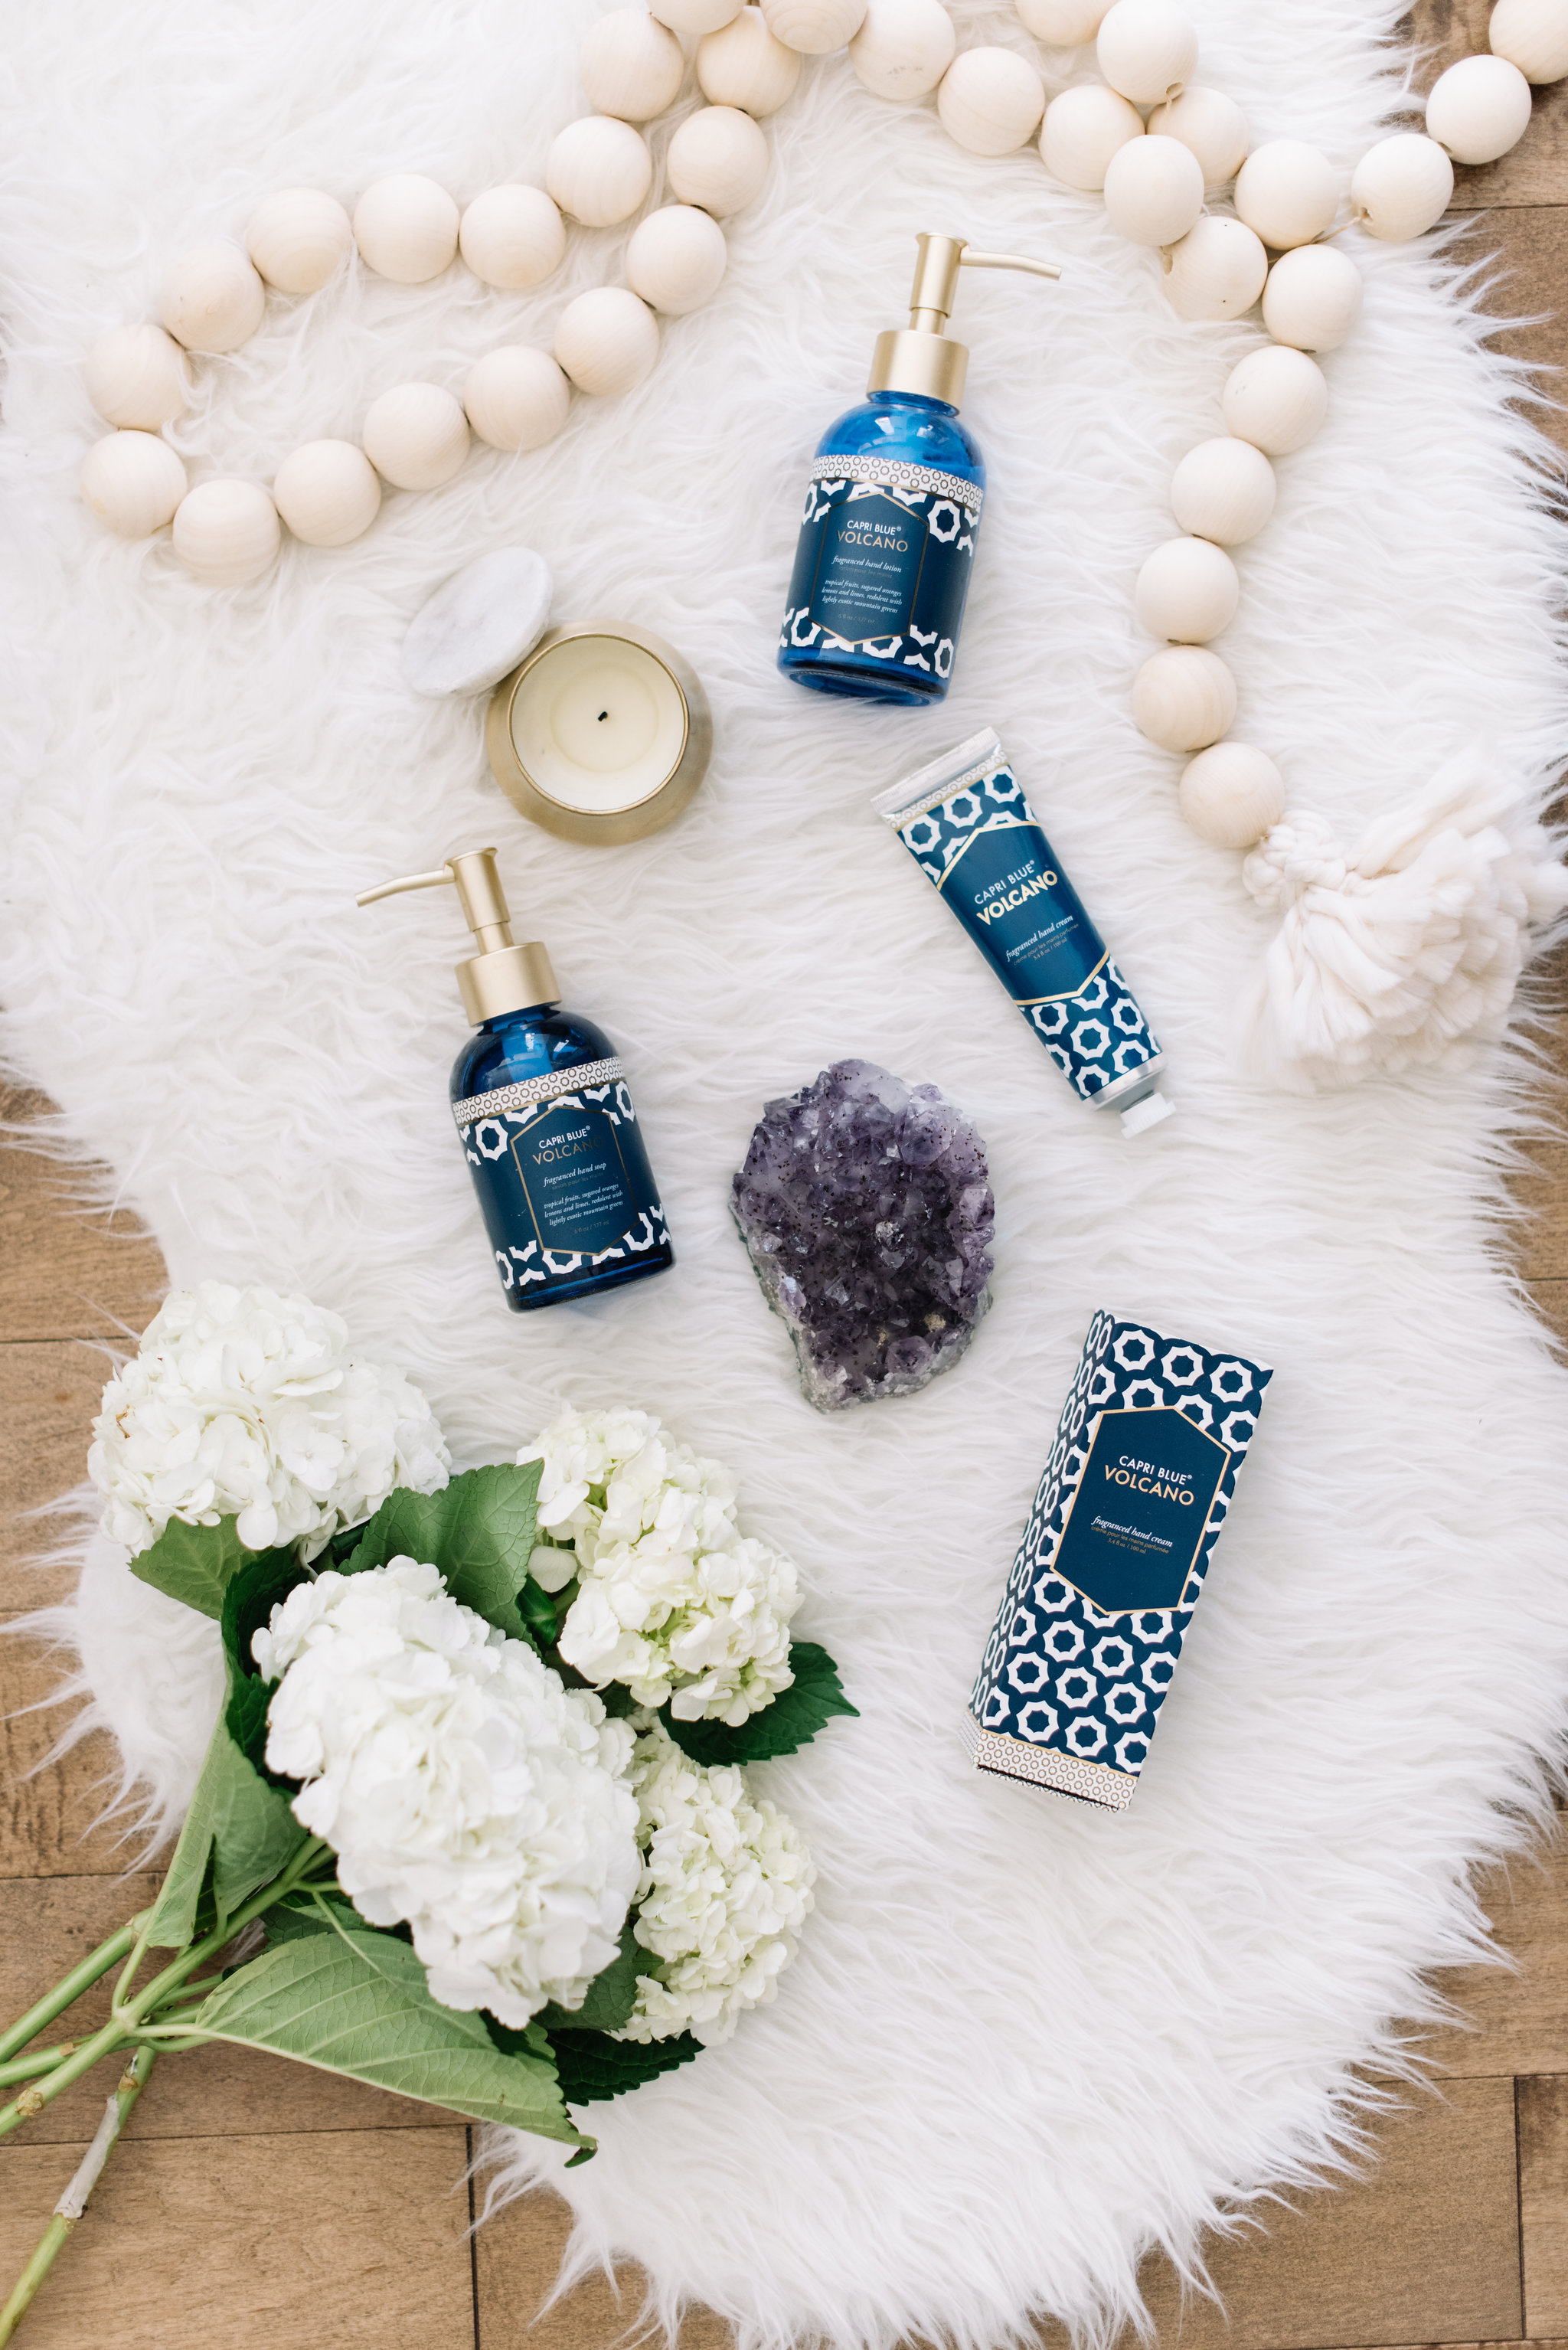 capri blue volcano, the best hand soap and lotion